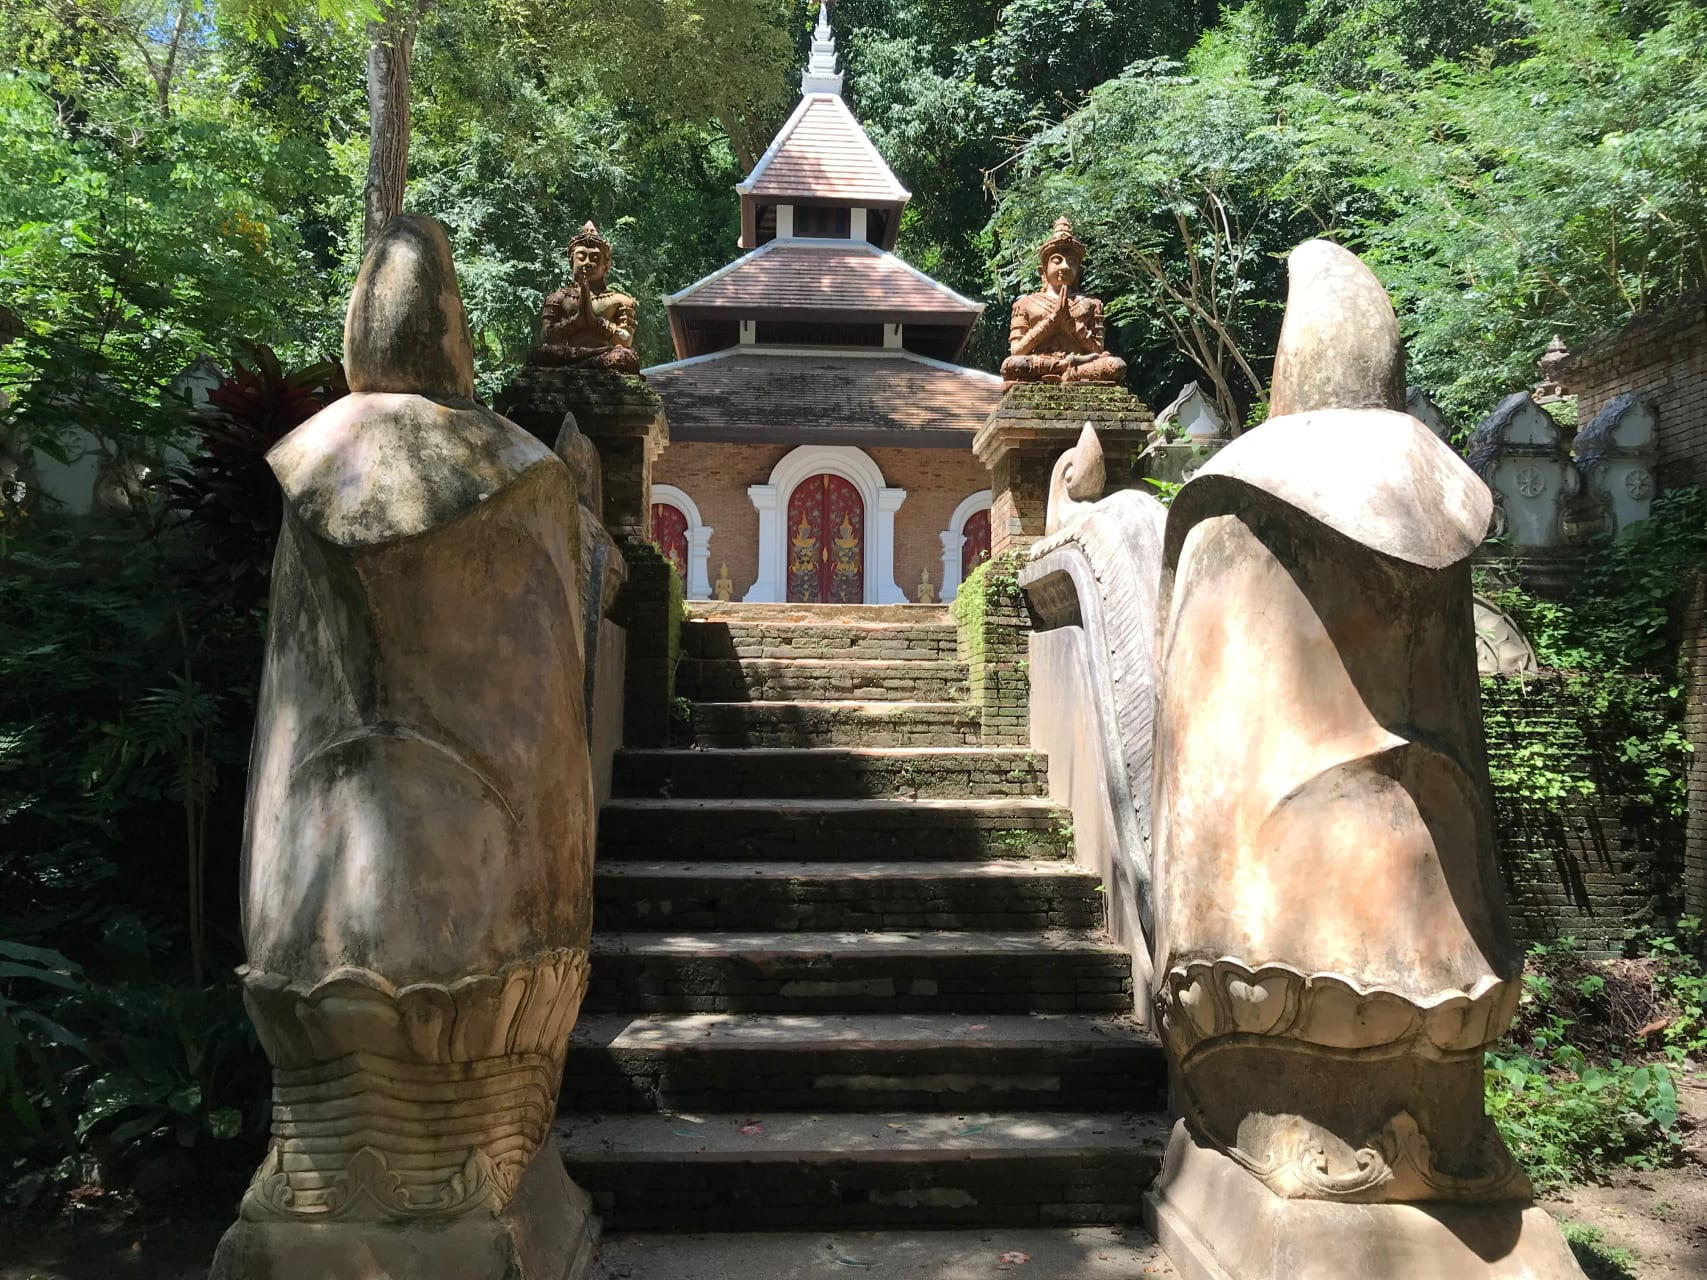 Chiang Mai - Forest temple, hiking the monk's trail